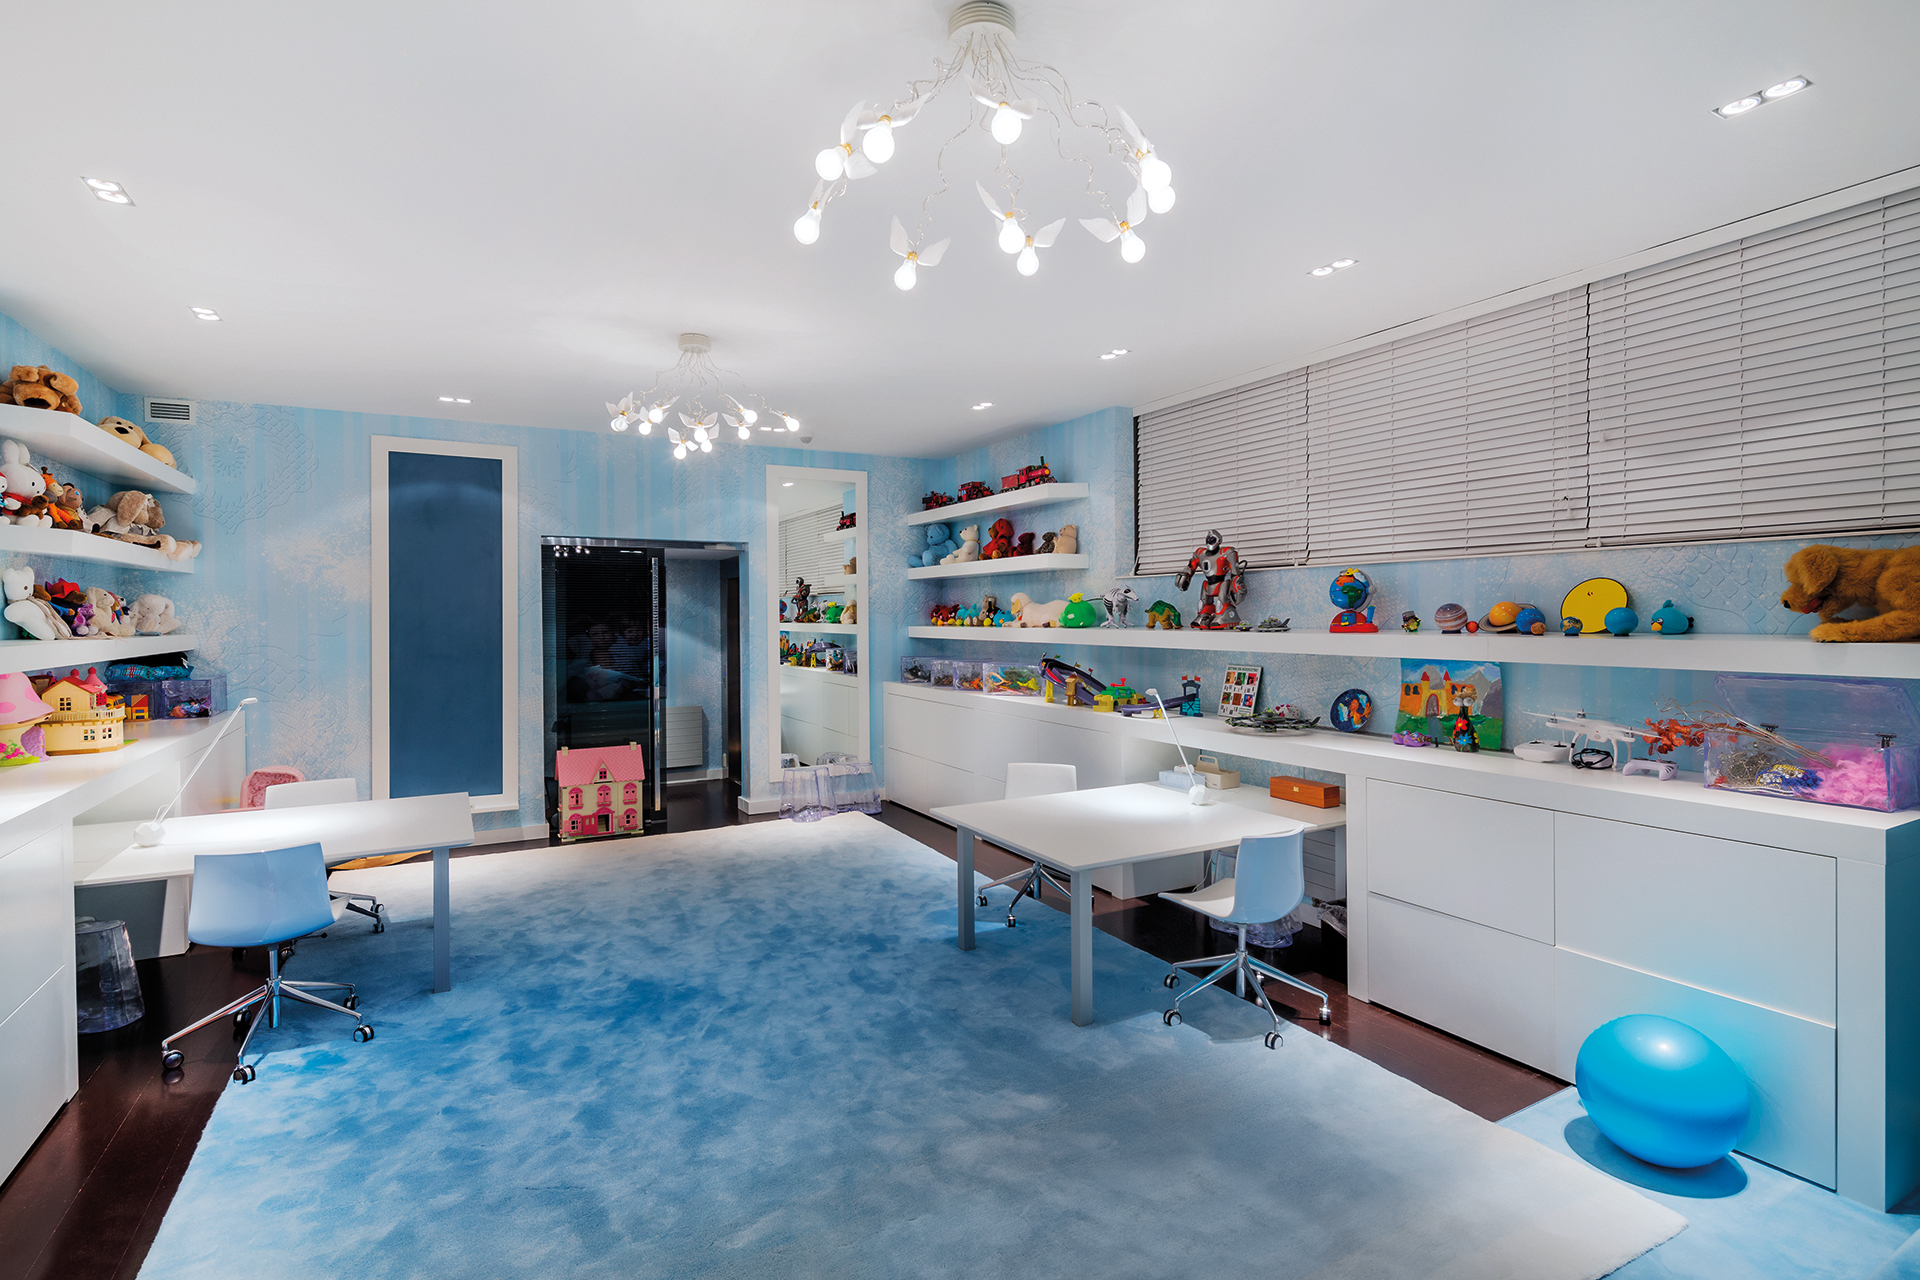 colorful toys line the walls in this playfully designed play room in sky blue